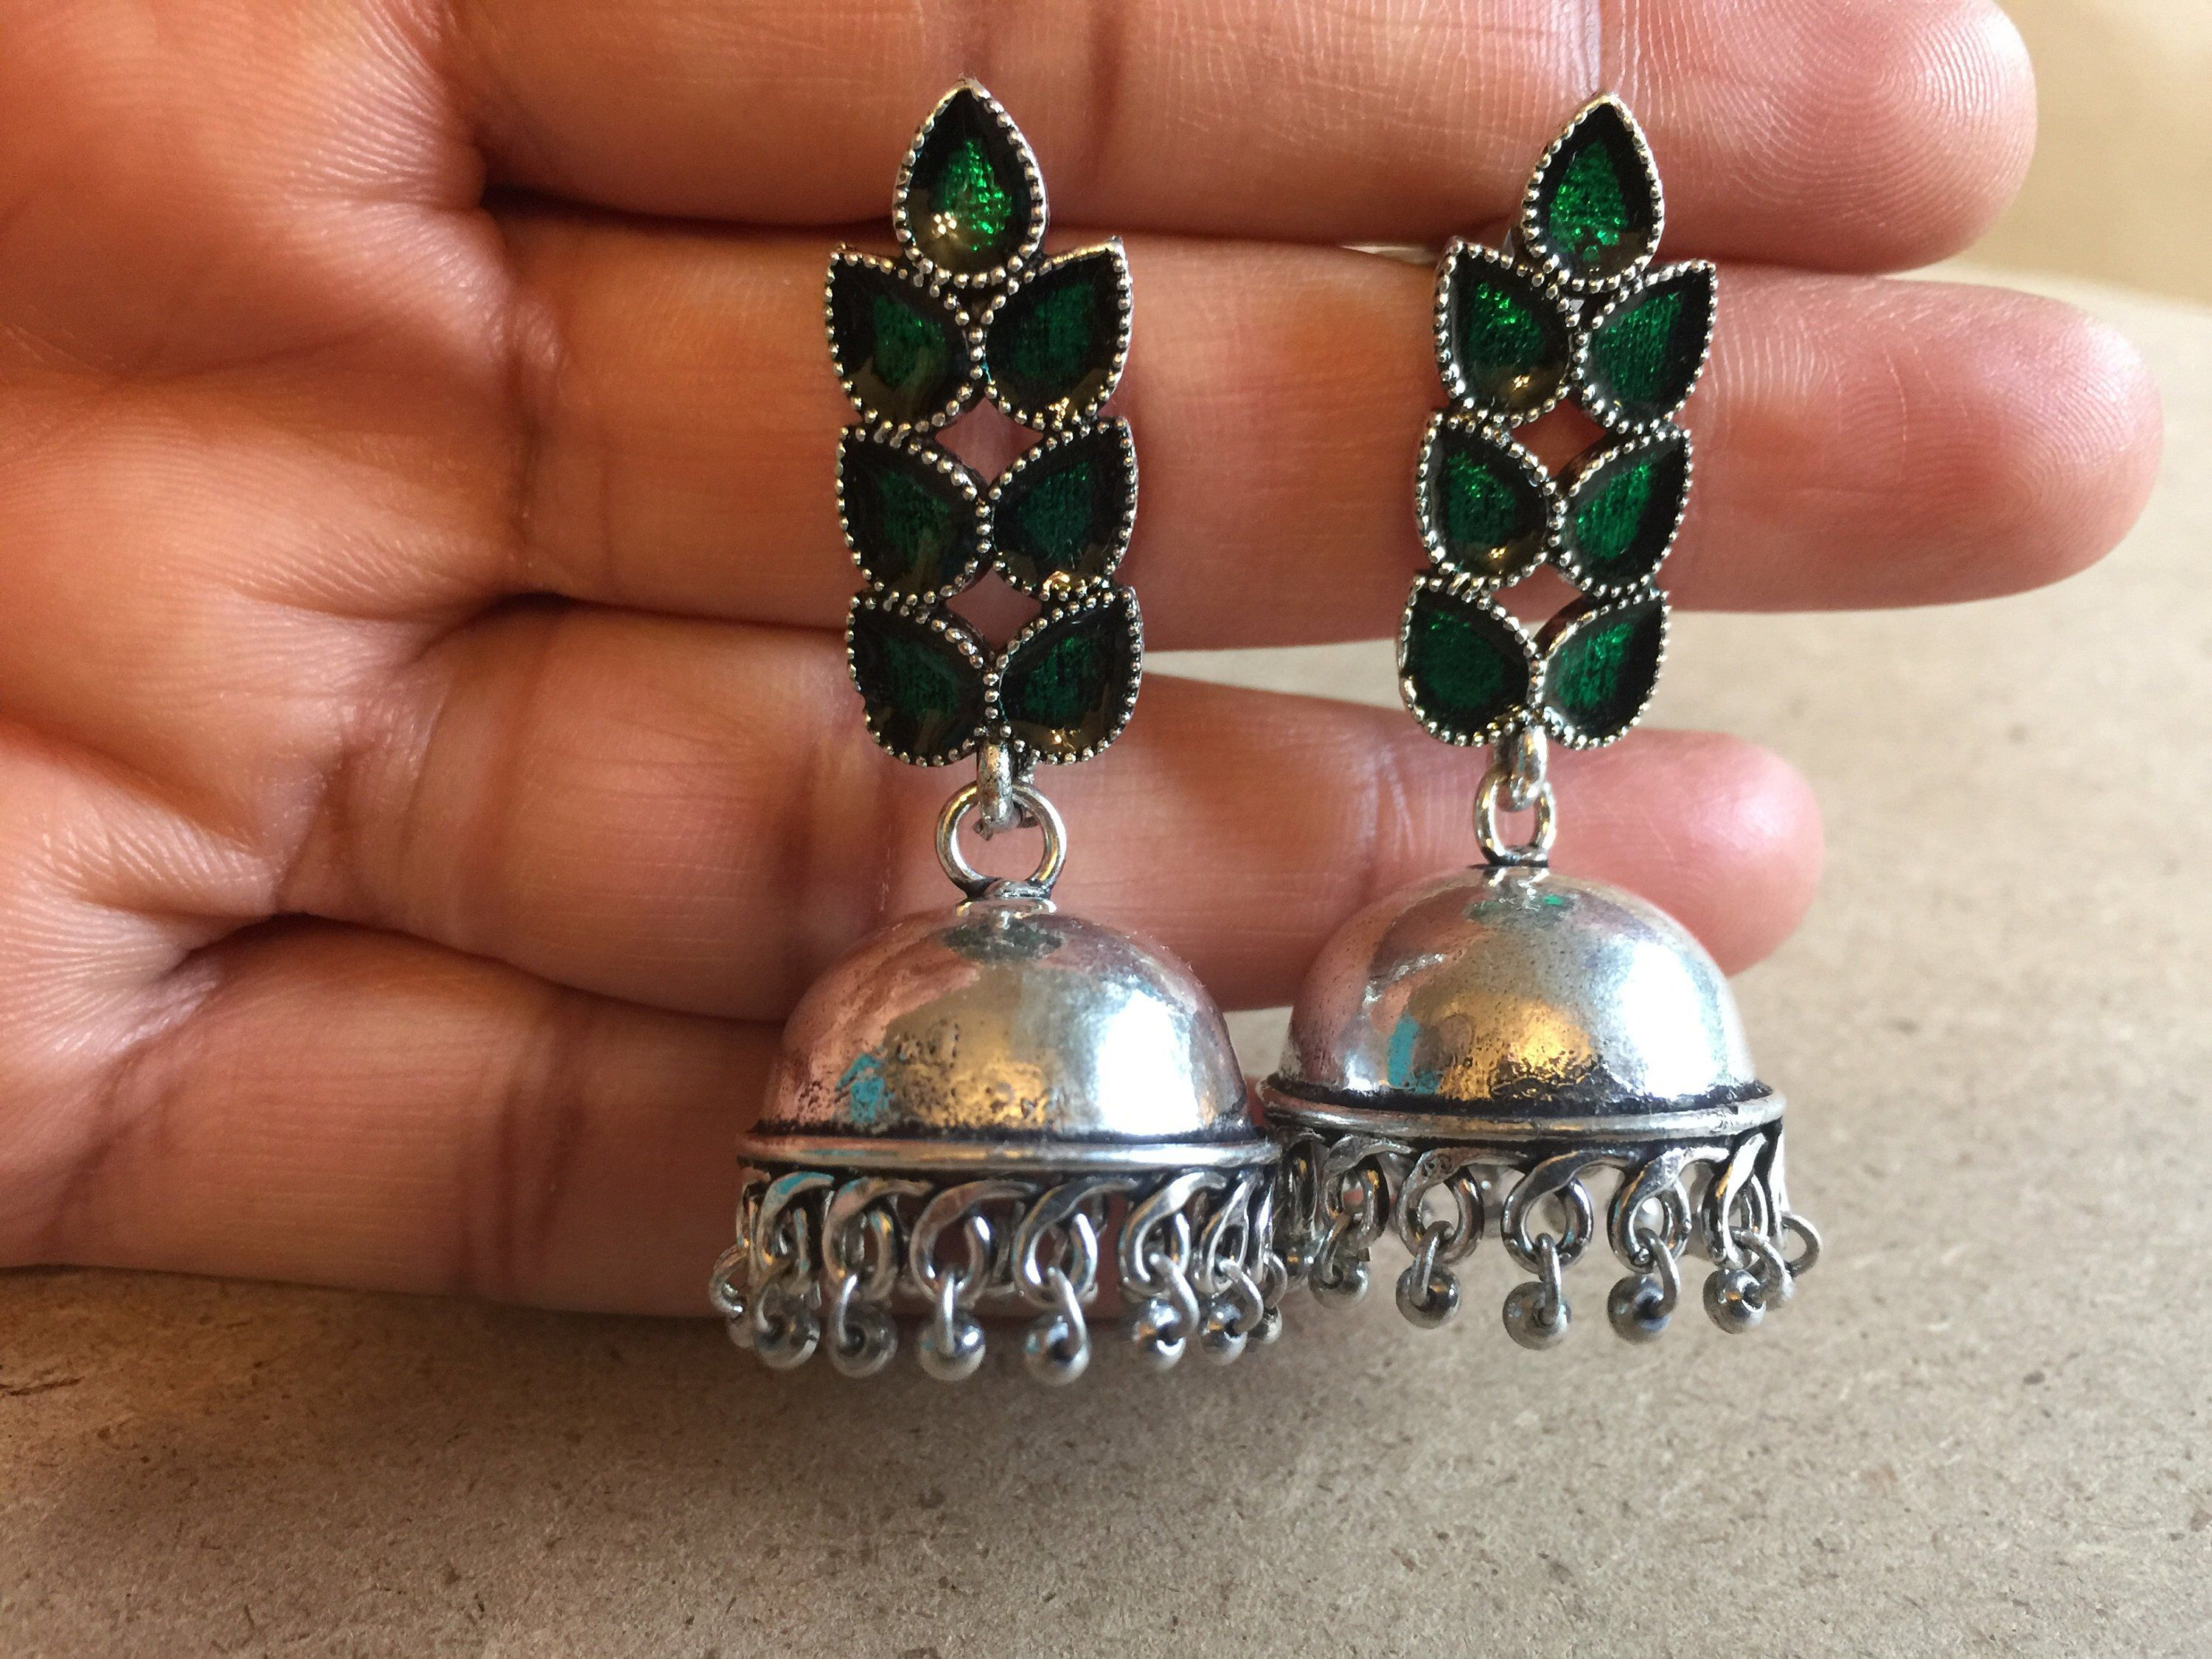 a649df967 Excited to share this item from my #etsy shop: German silver jhumka with  meenakari stud, Meena work on Jhumka, Leaf stud Jhumka earrings, ...